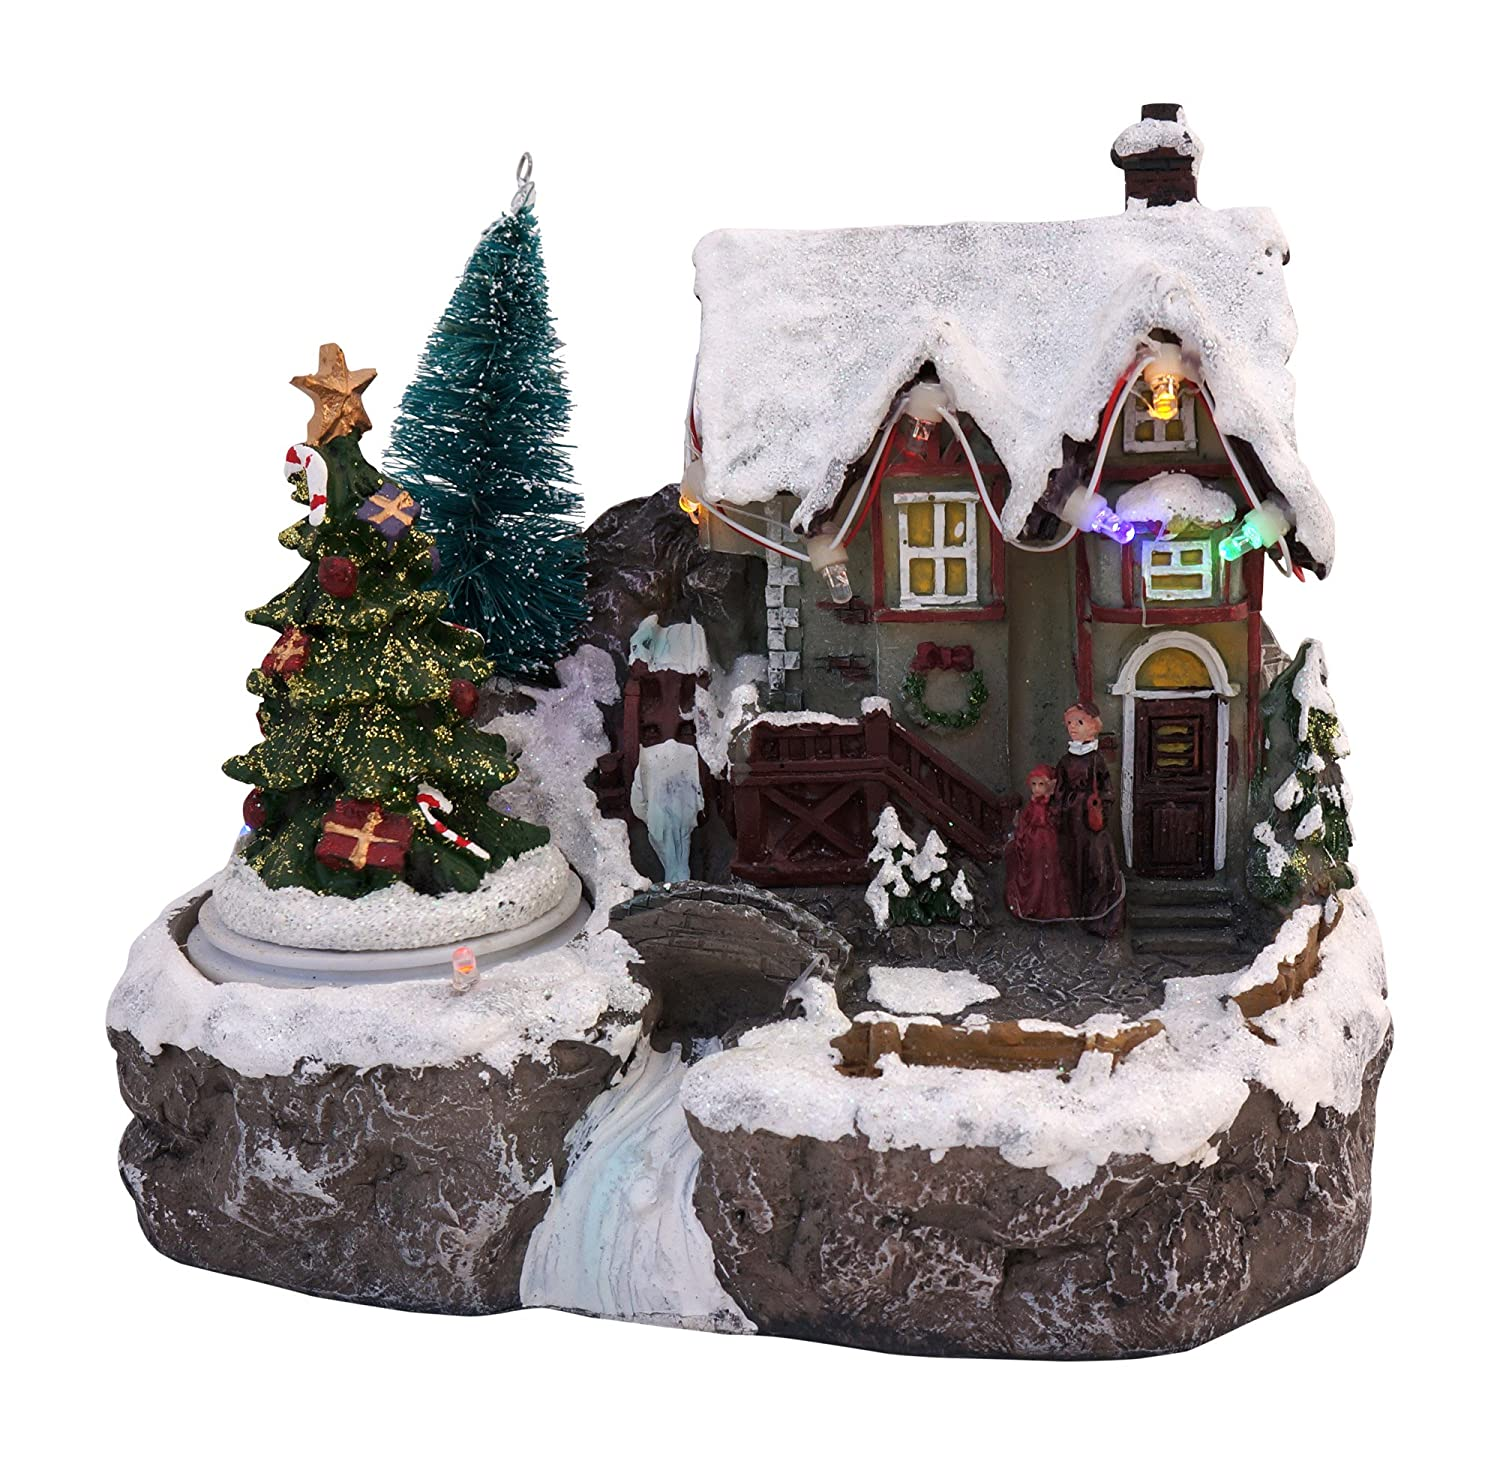 amazoncom led lighted snowy christmas village animated winter house scenes spinning tree home kitchen - Animated Christmas Scenes